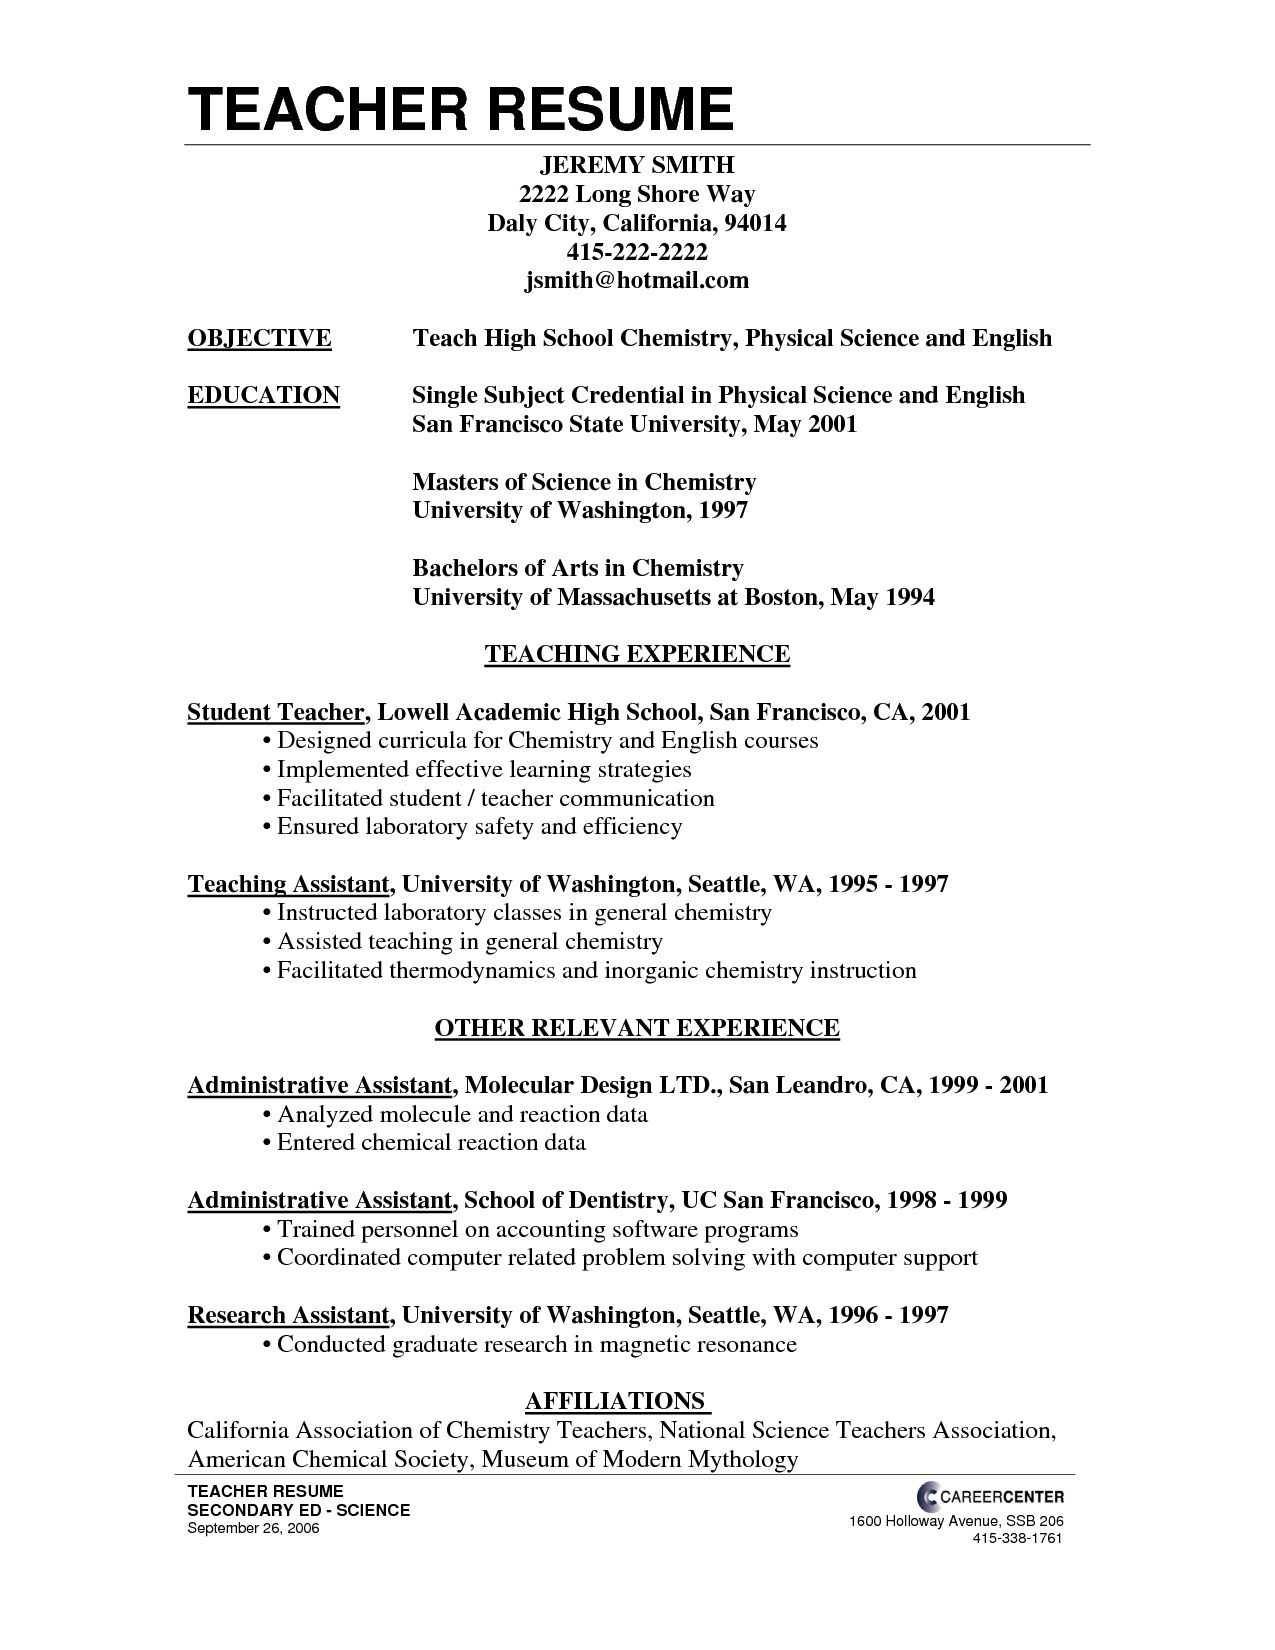 resume format for school teacher job